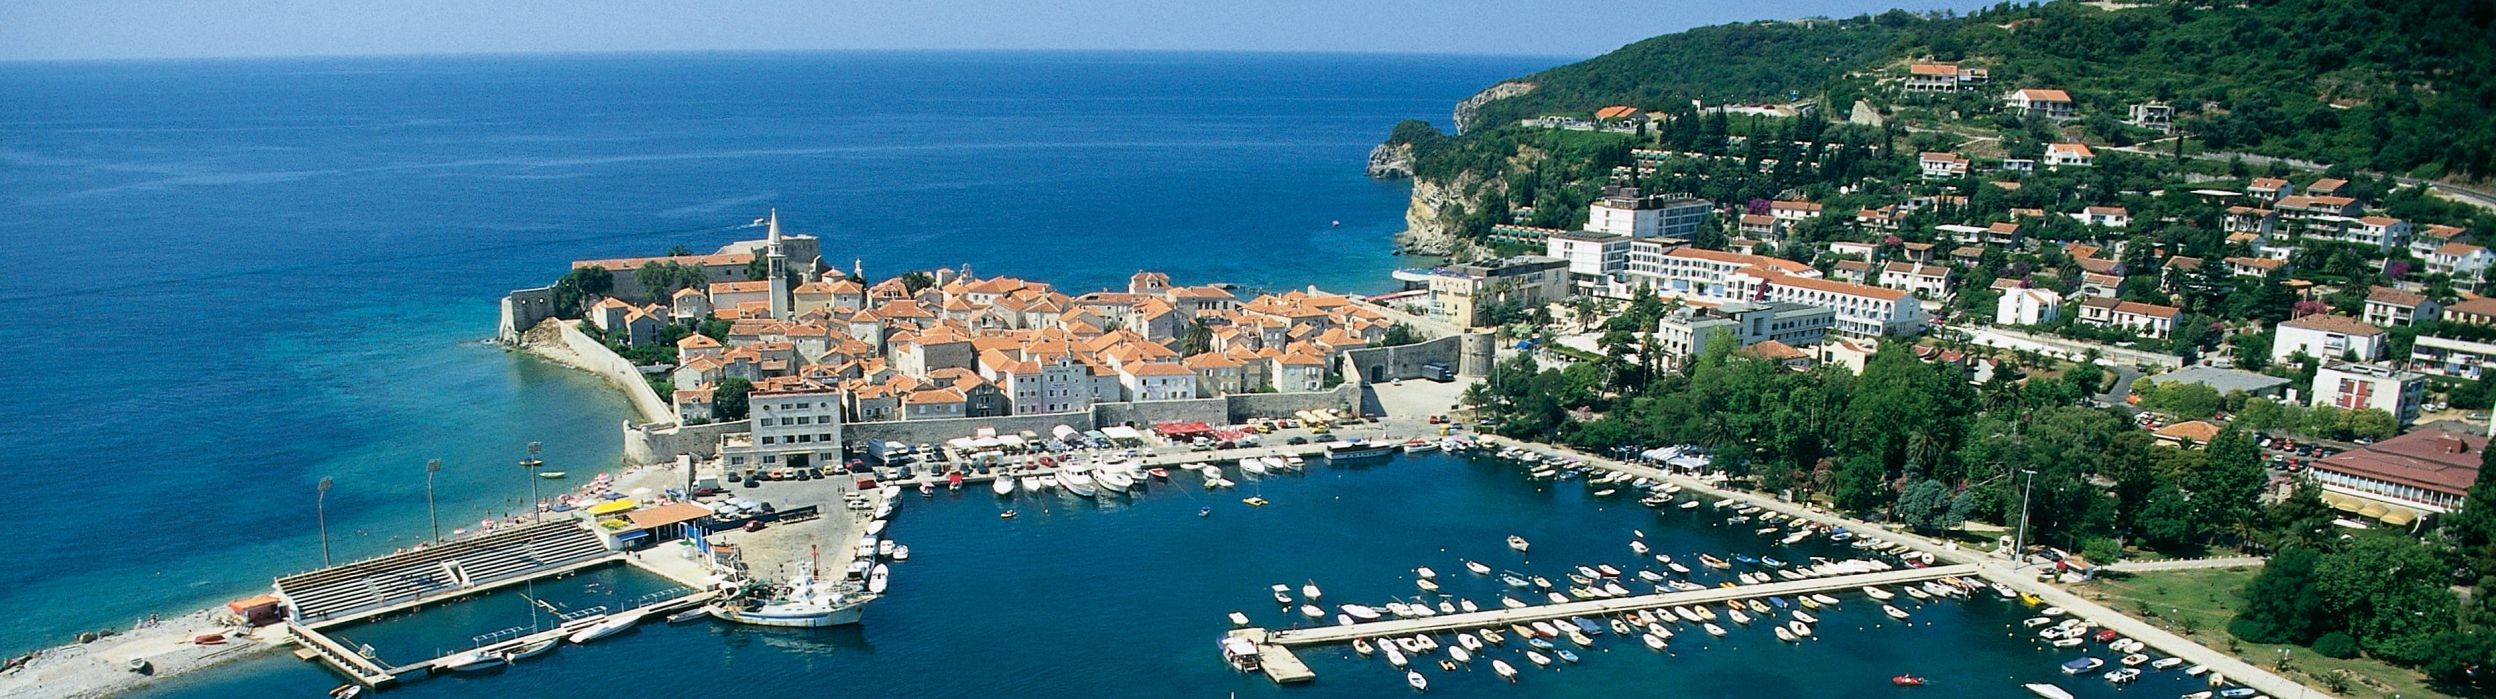 Budva city - scenic view - Authentic Villa Holidays_2496x699